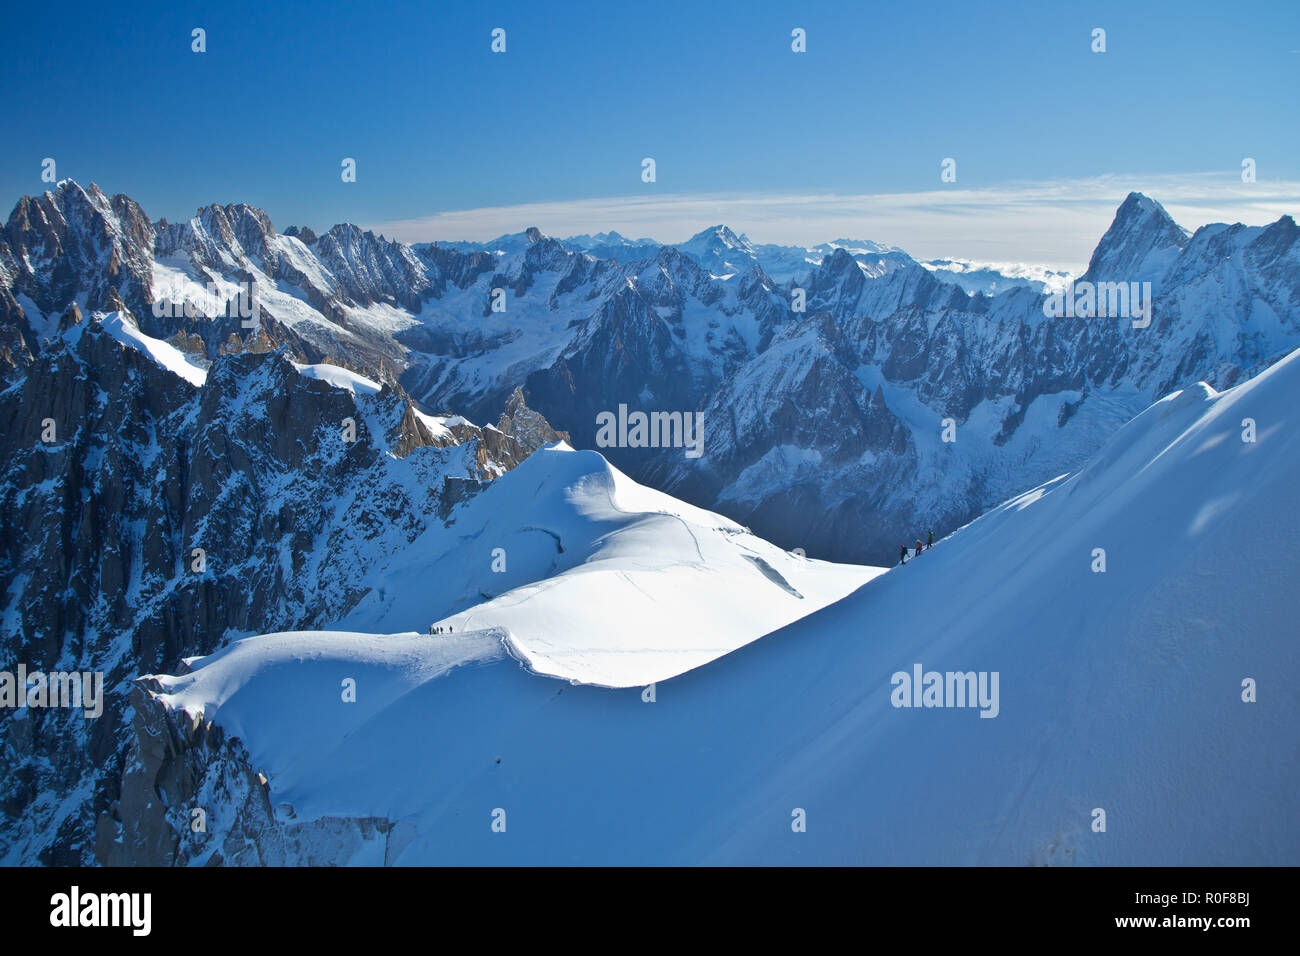 The Aiguille du Midi is a mountain in the Mont Blanc massif within the French Alps, accessed by cable car from Chamonix. - Stock Image